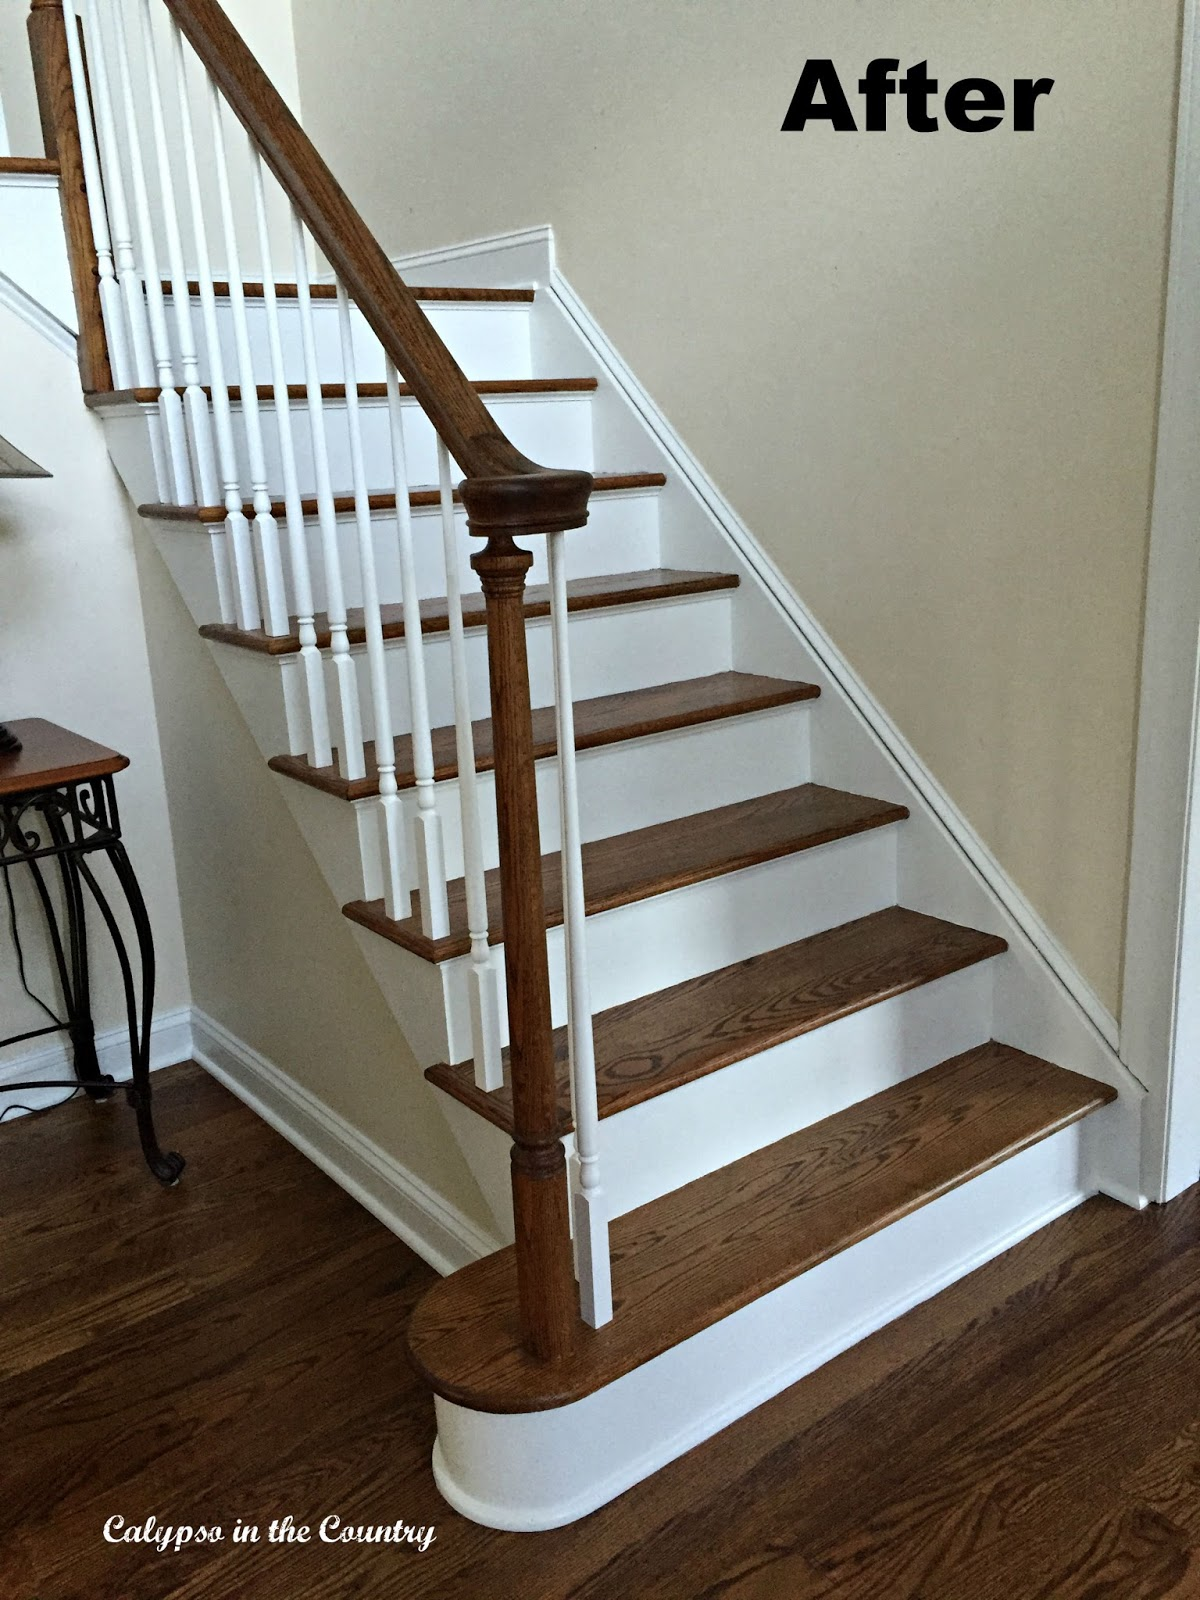 Painting Foyer Stairs : The foyer before and after deciding on paint color